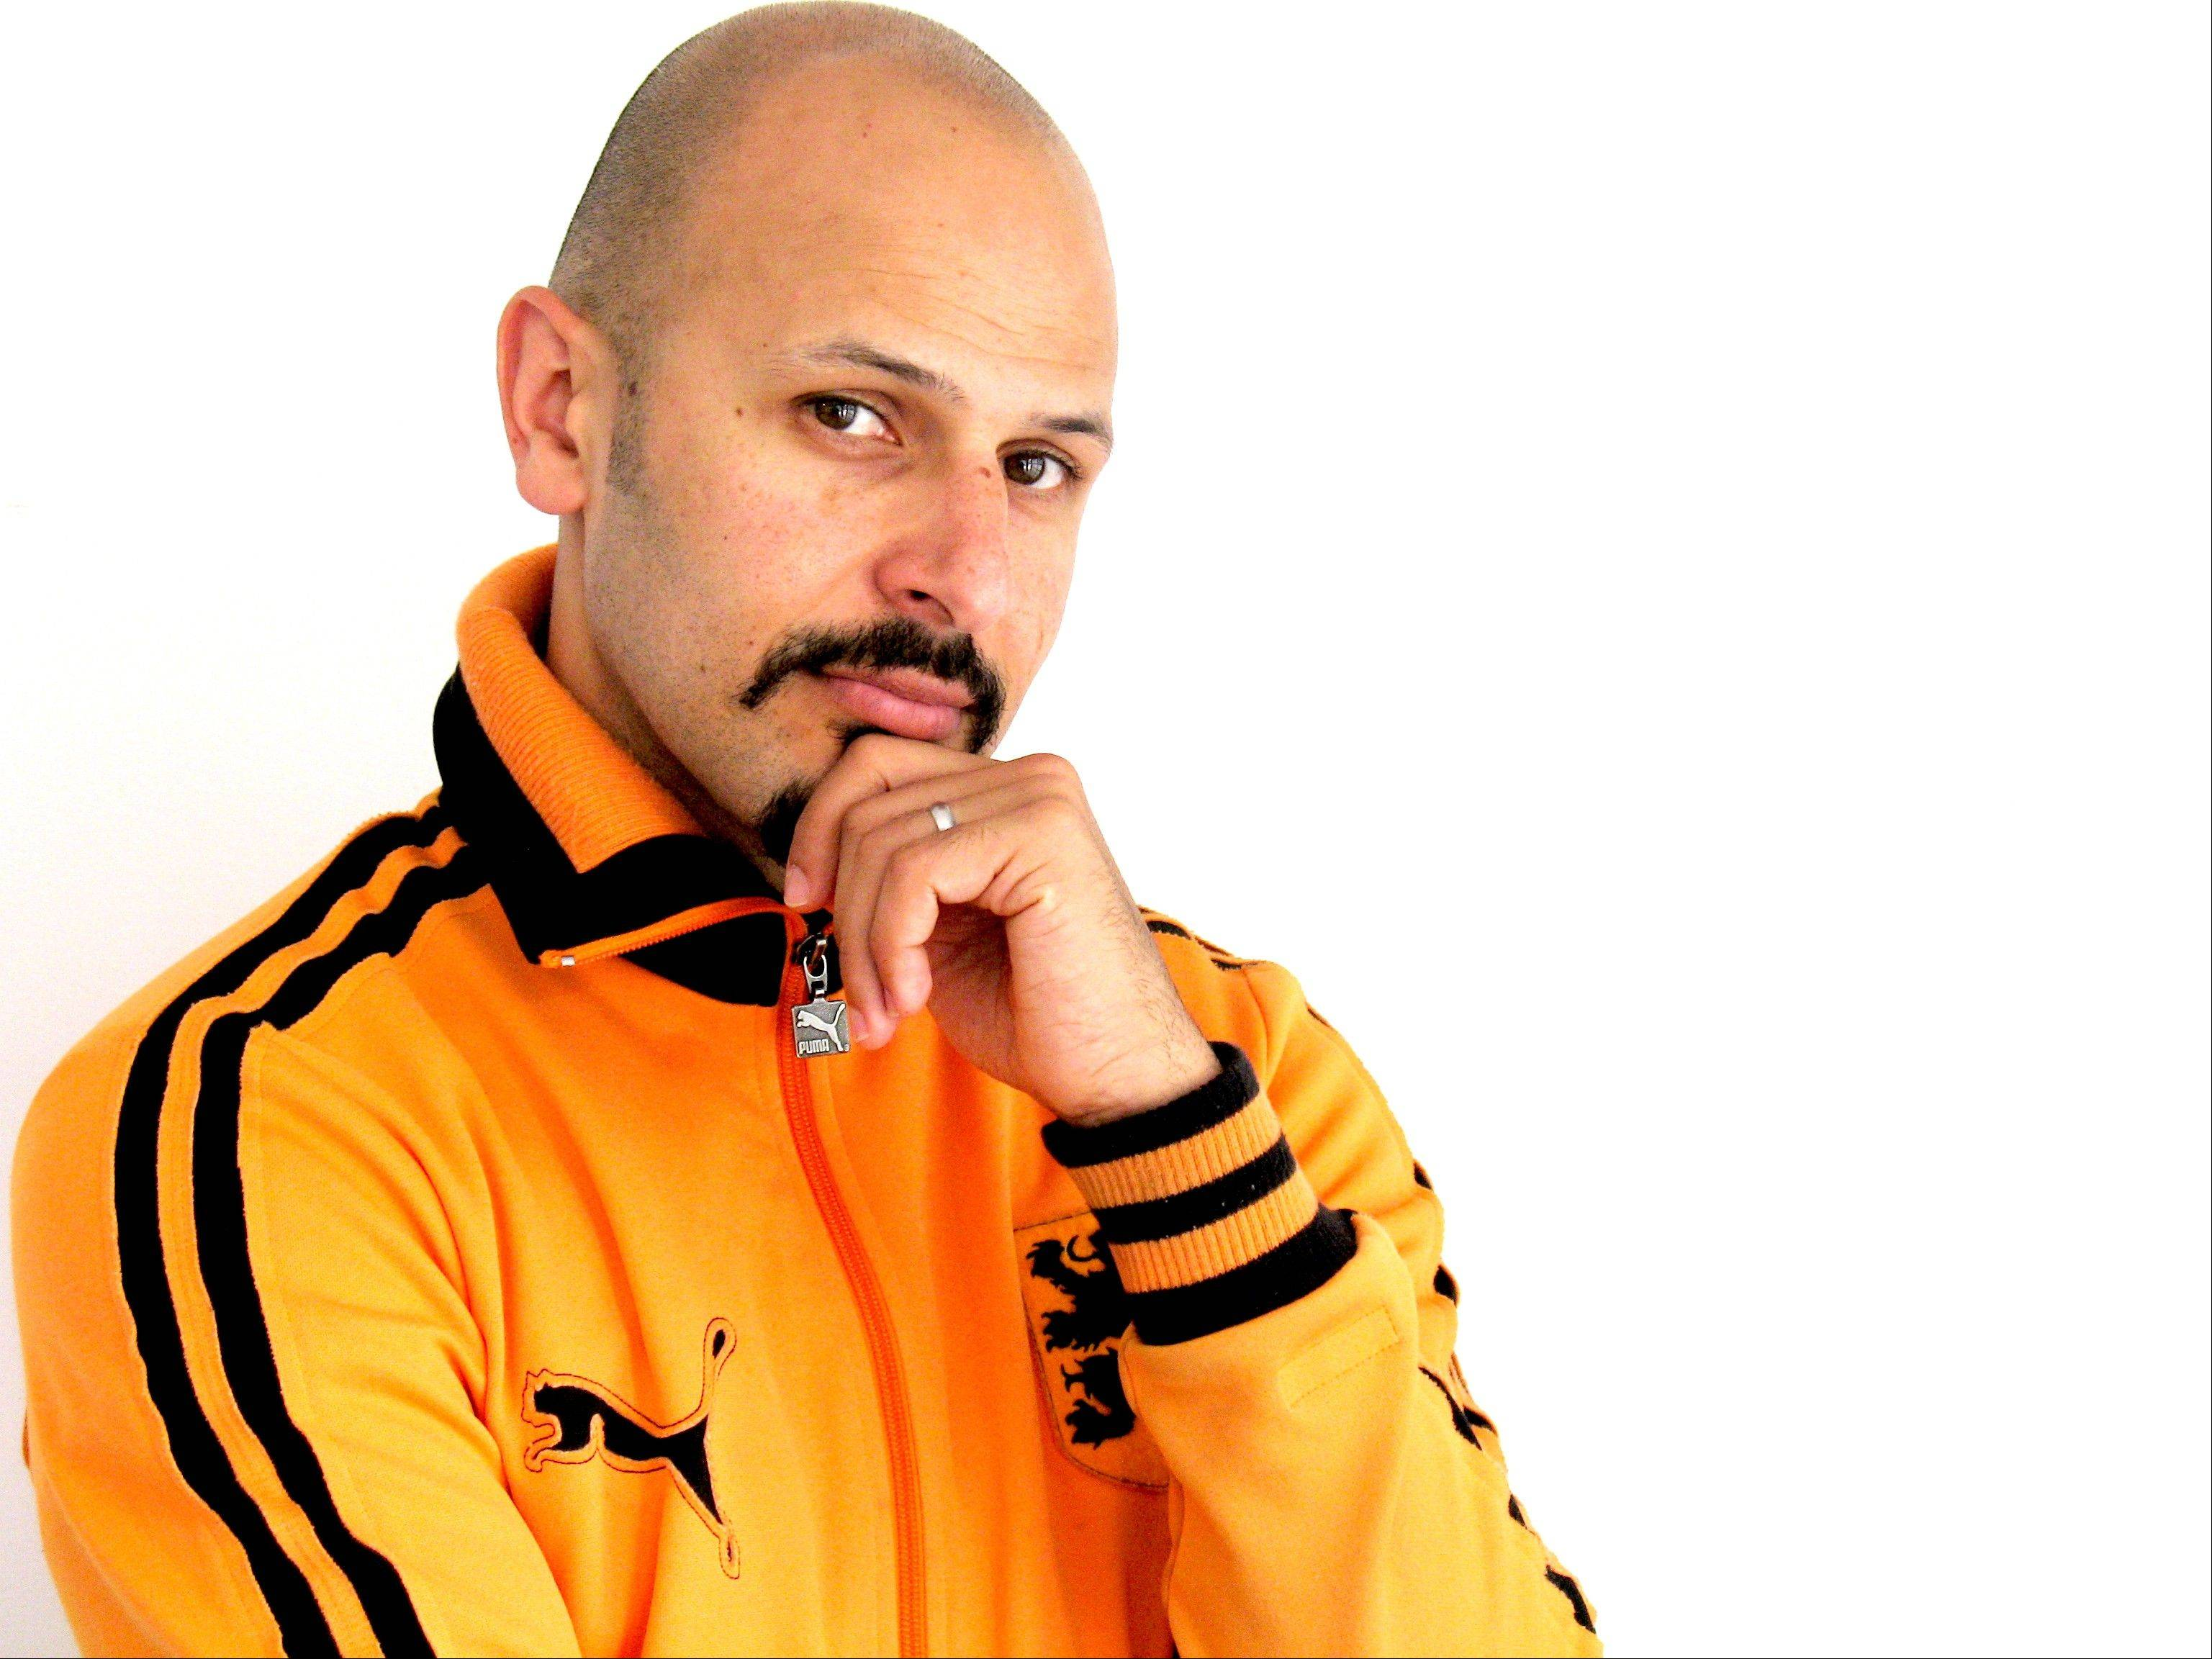 Comedian Maz Jobrani is set to play the Improv Comedy Showcase